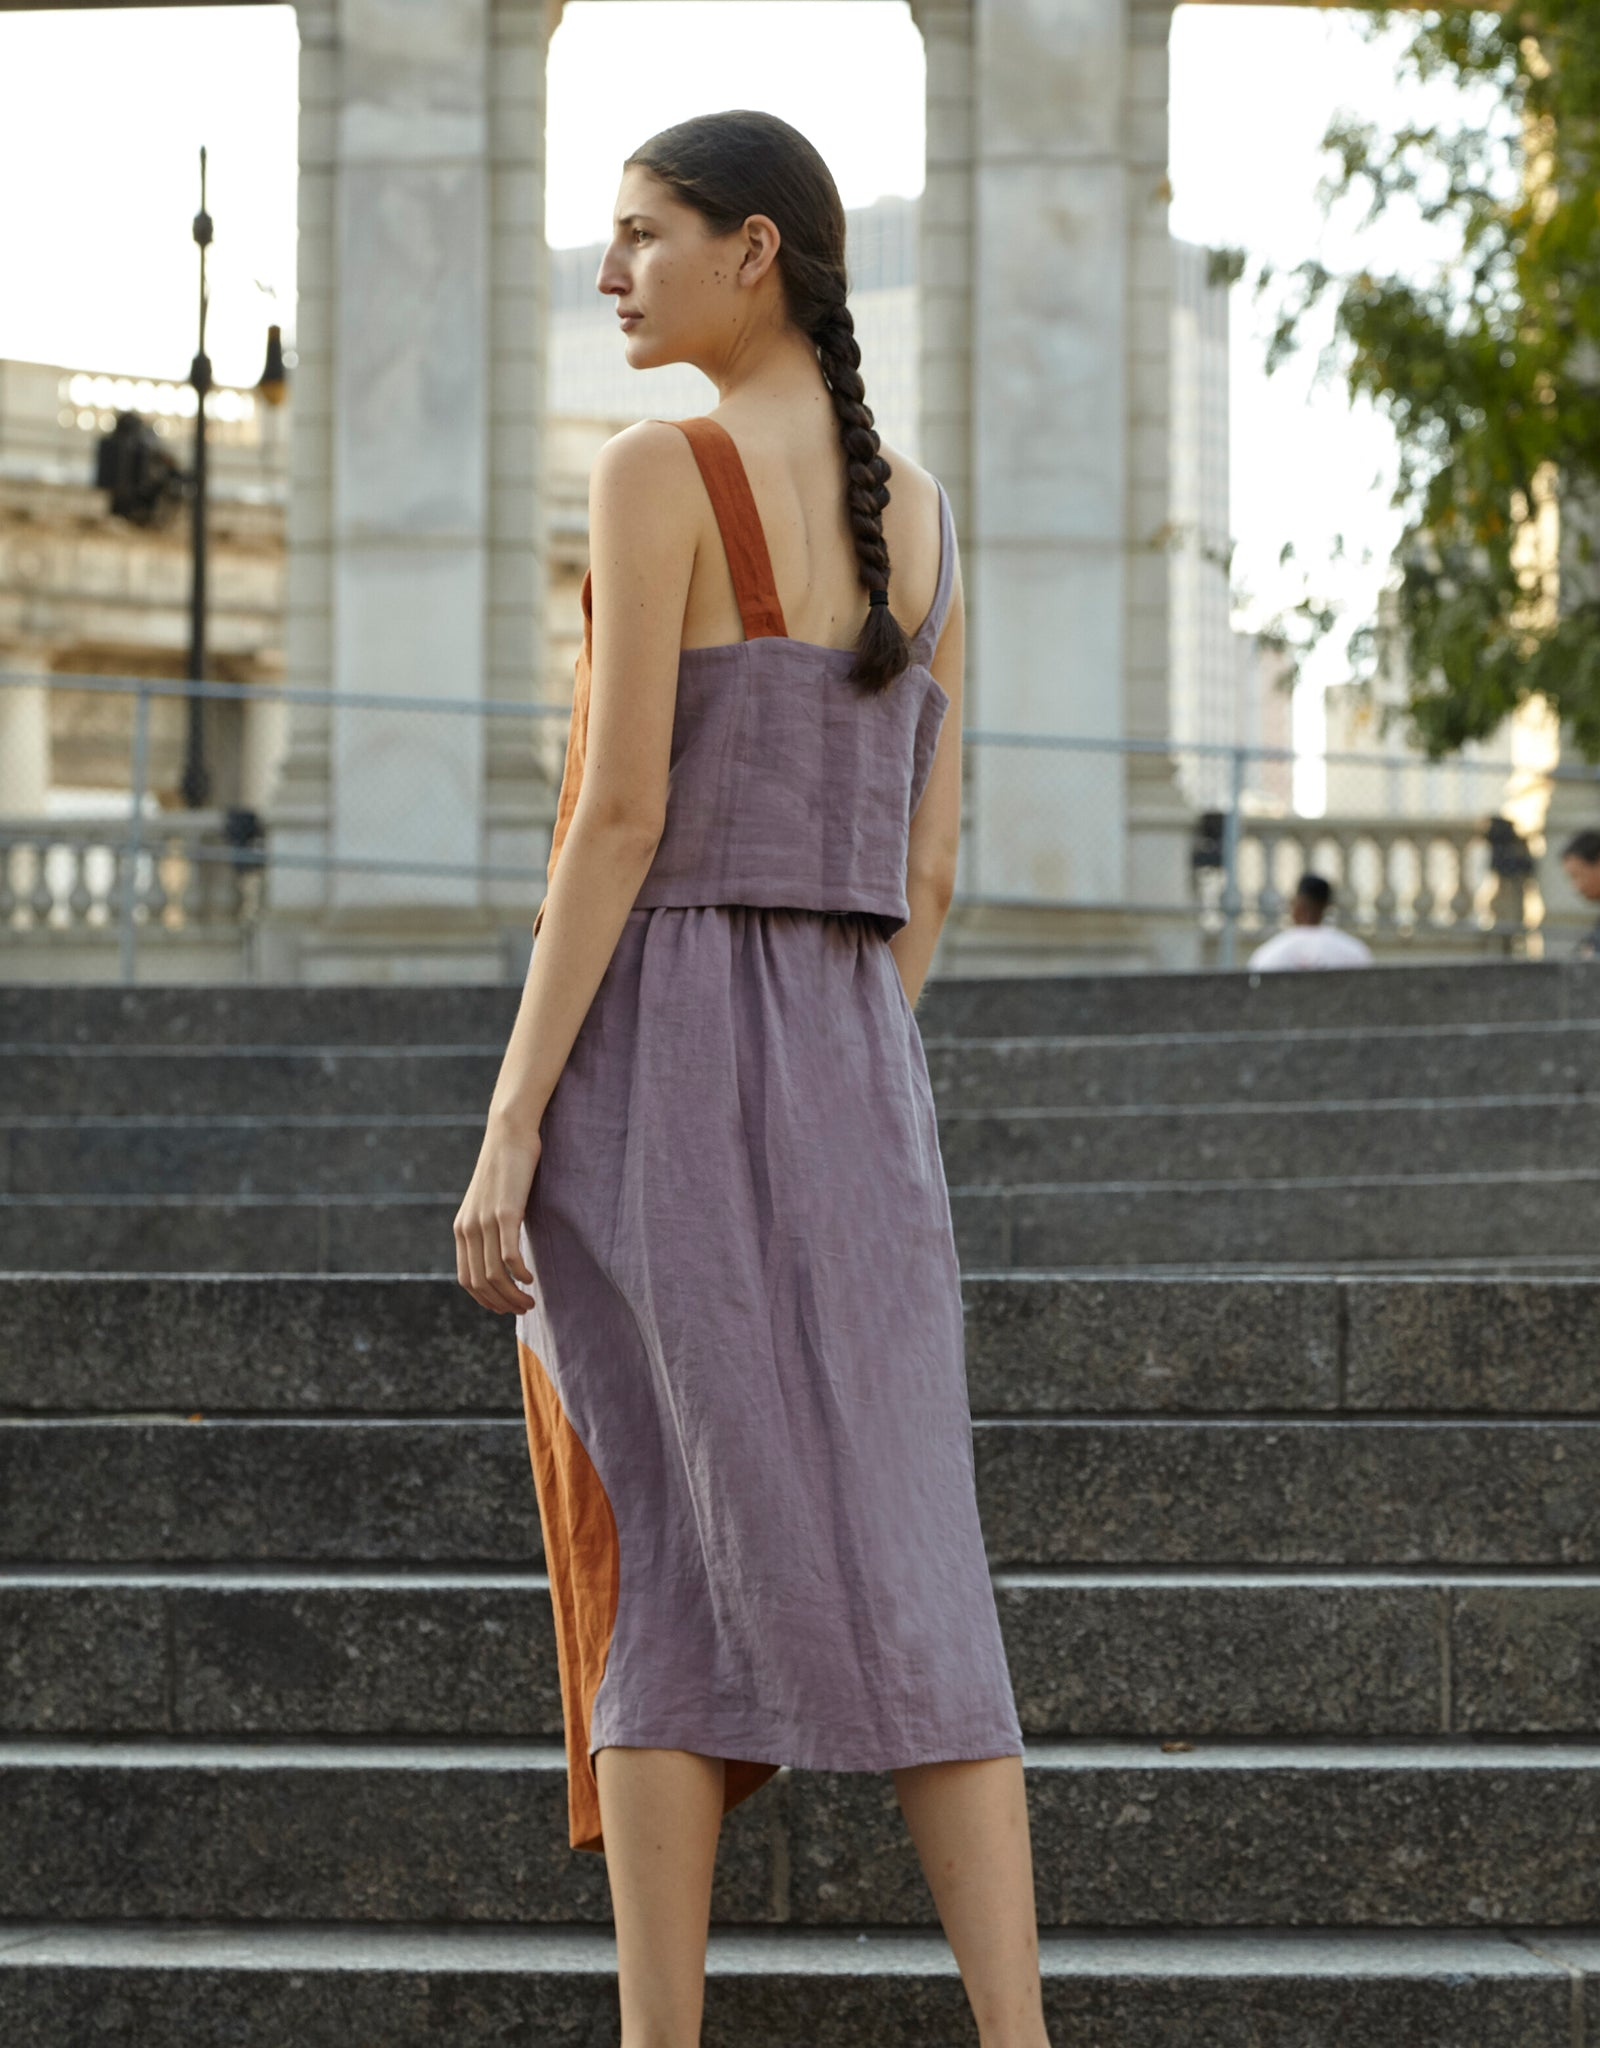 Model wears Correll Correll Olka Top in Lilac with Bronze detail, back. Available at FAWN Toronto.